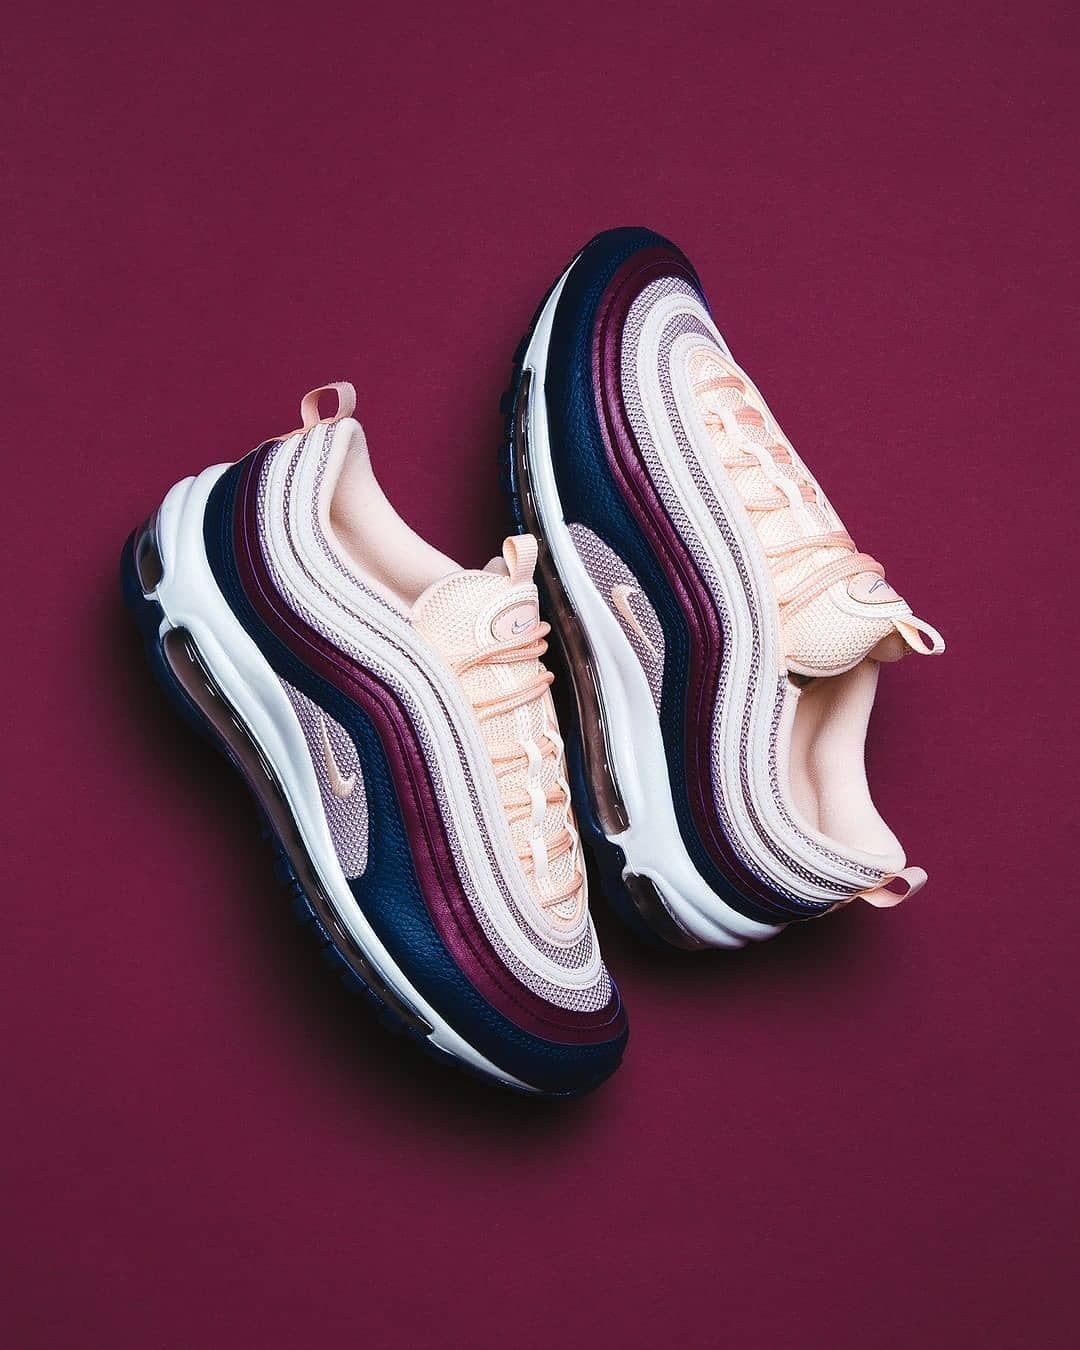 Pin by Da'Nesta Kelly on Shoes in 2020 | Nike air max 97